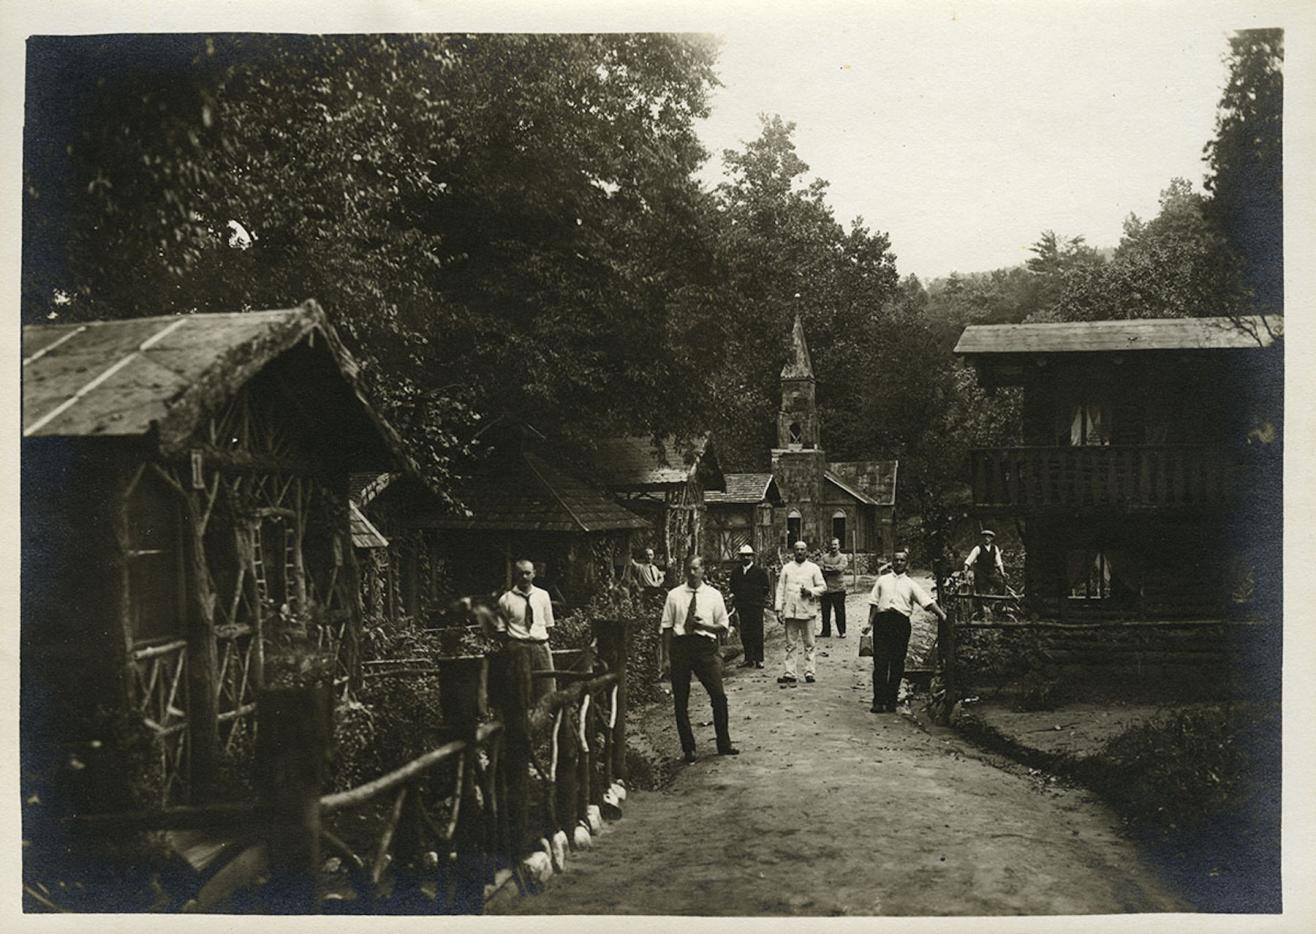 Photograph of German nationals standing outside residential dwellings.